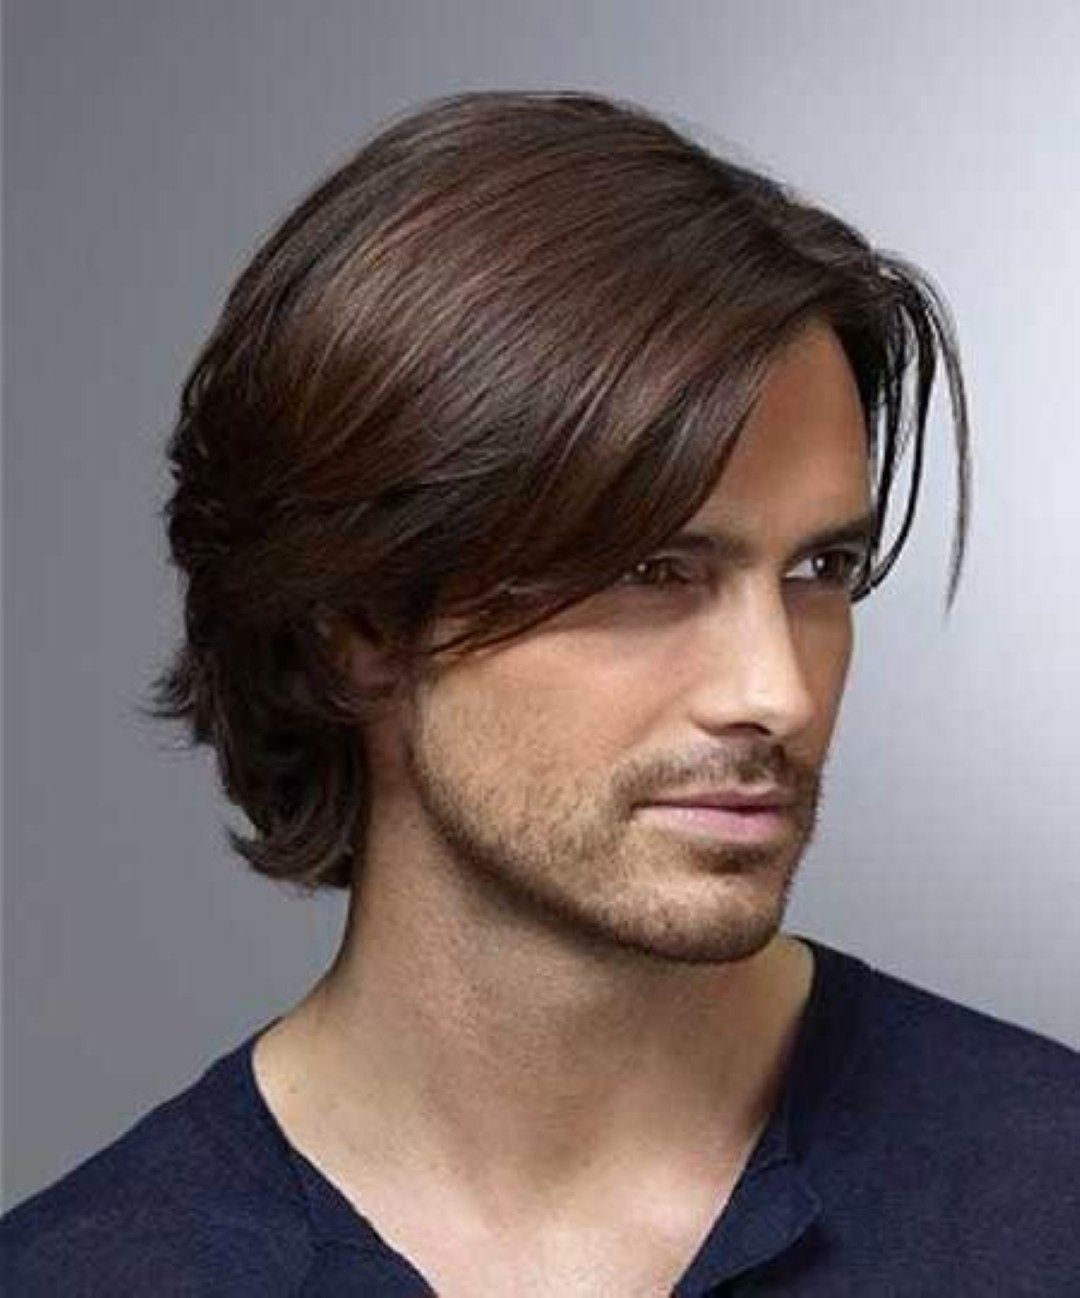 Pleasing 1000 Images About Hair Styles For Boys Dad On Pinterest Short Hairstyles Gunalazisus